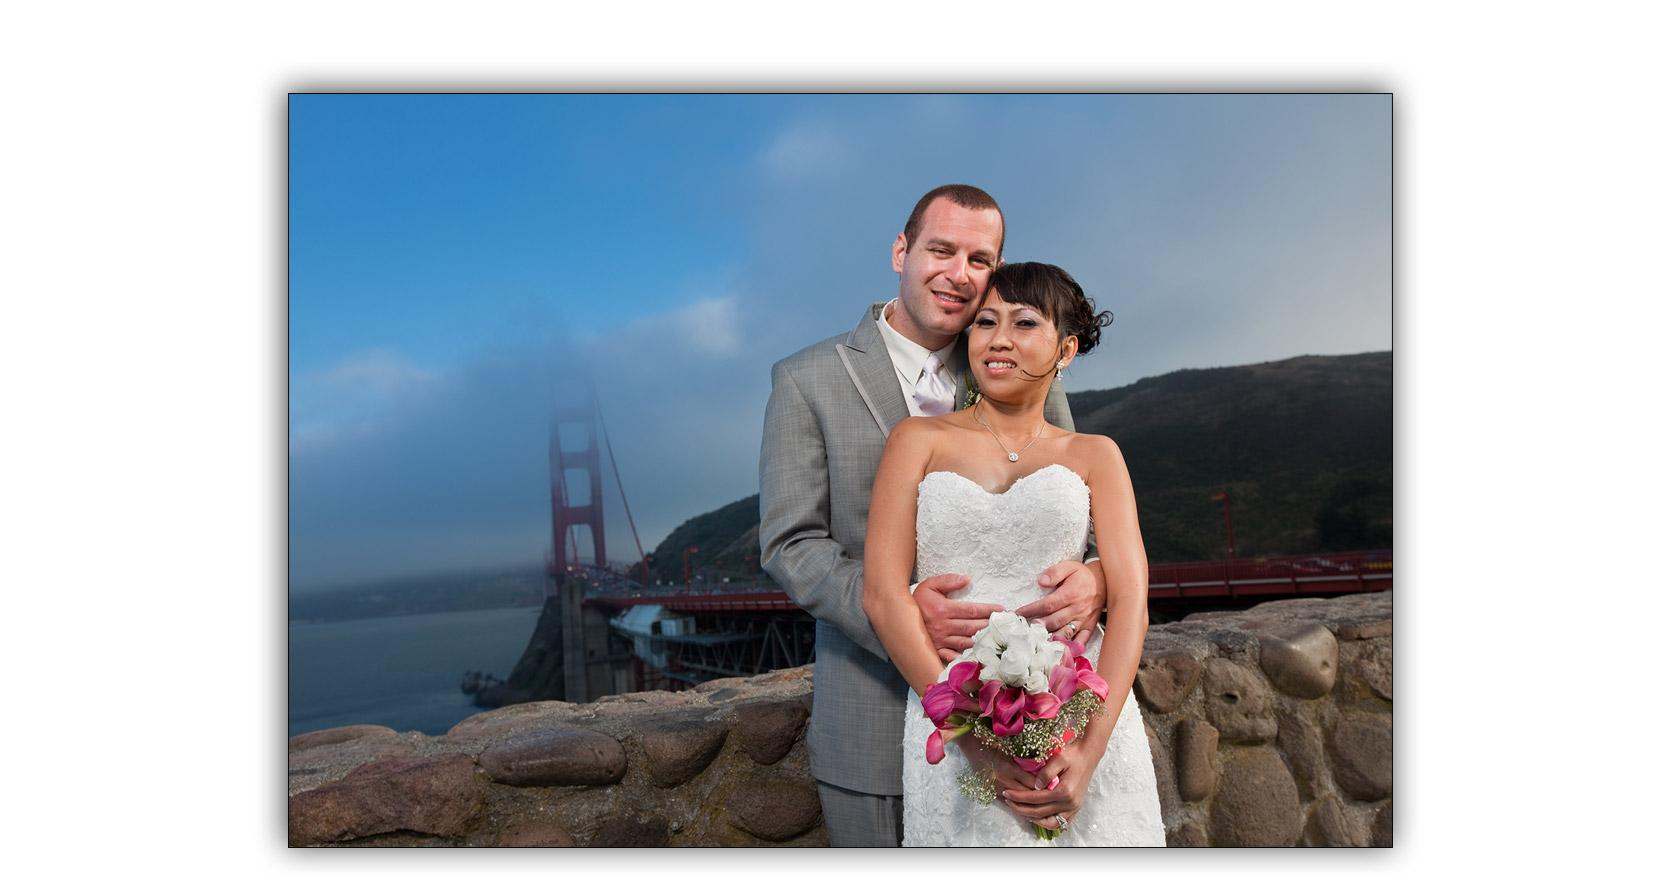 San Francisco Bay yacht boat wedding cruise Commodore Events Merlot photography album 14